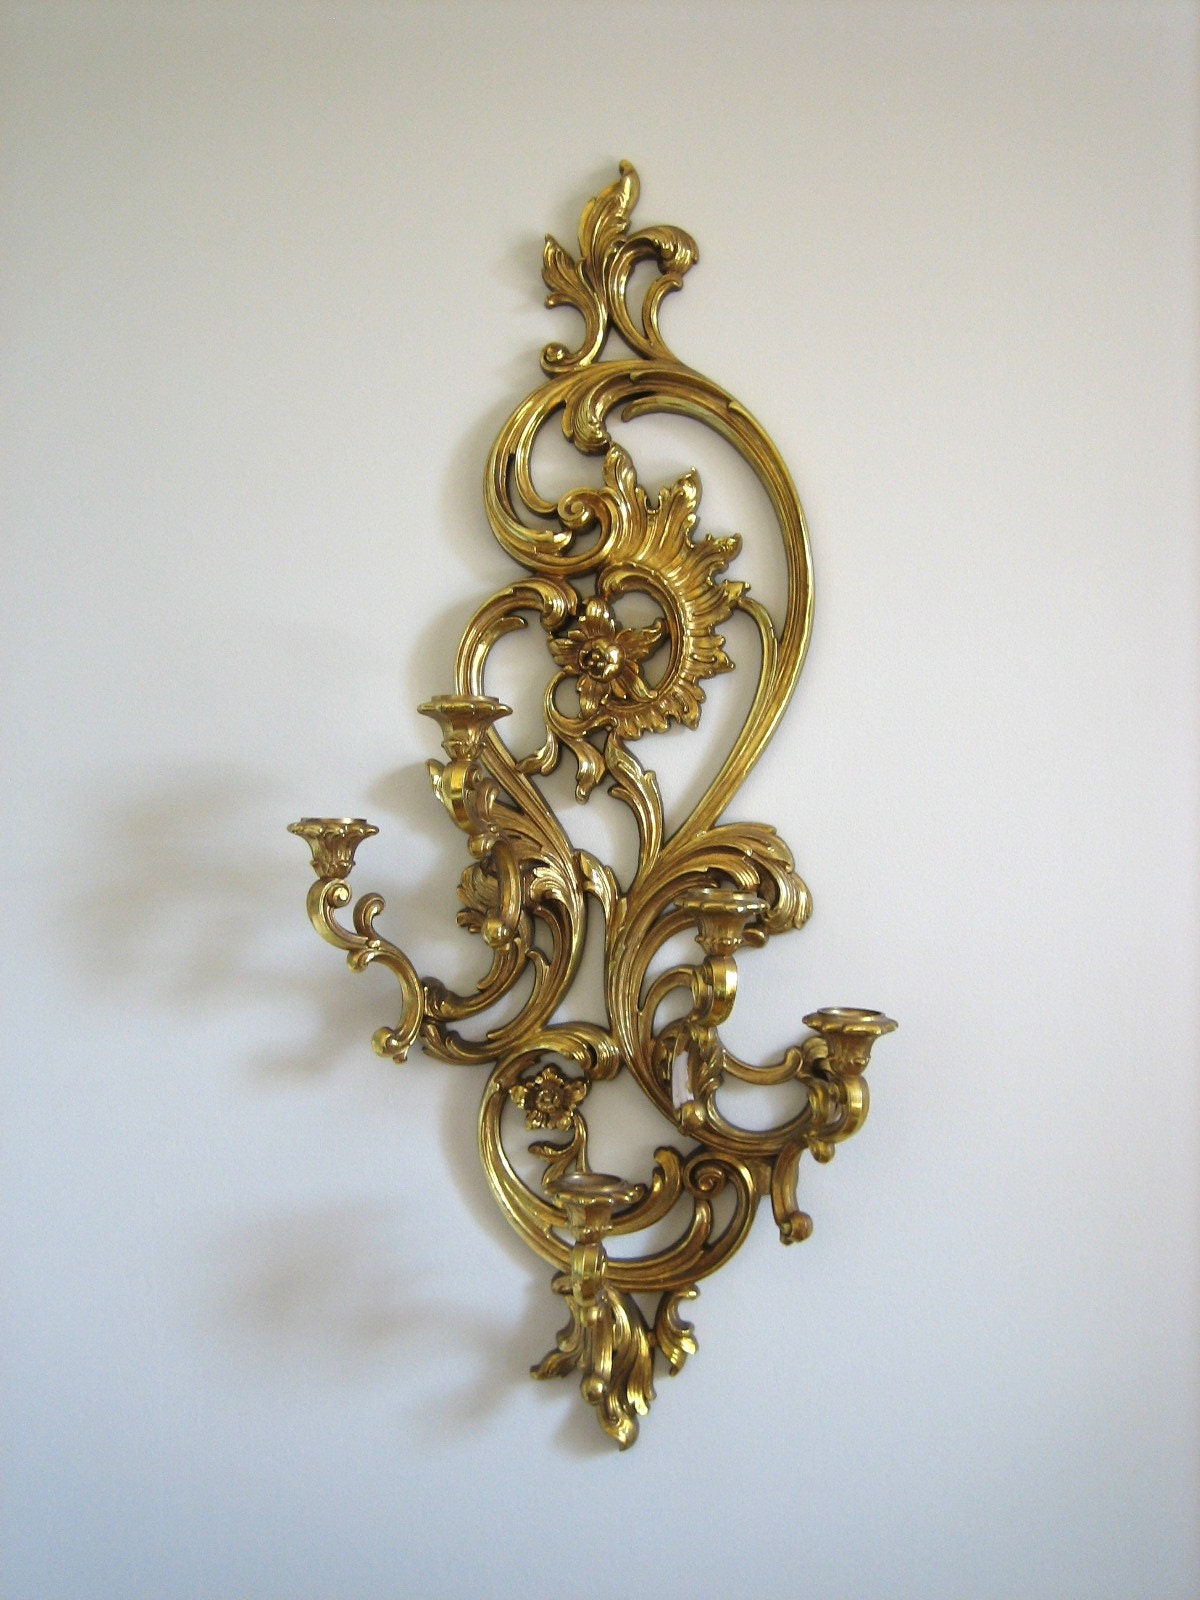 Gold Candle Wall Lights : Large Ornate Gold Candle Wall Sconce